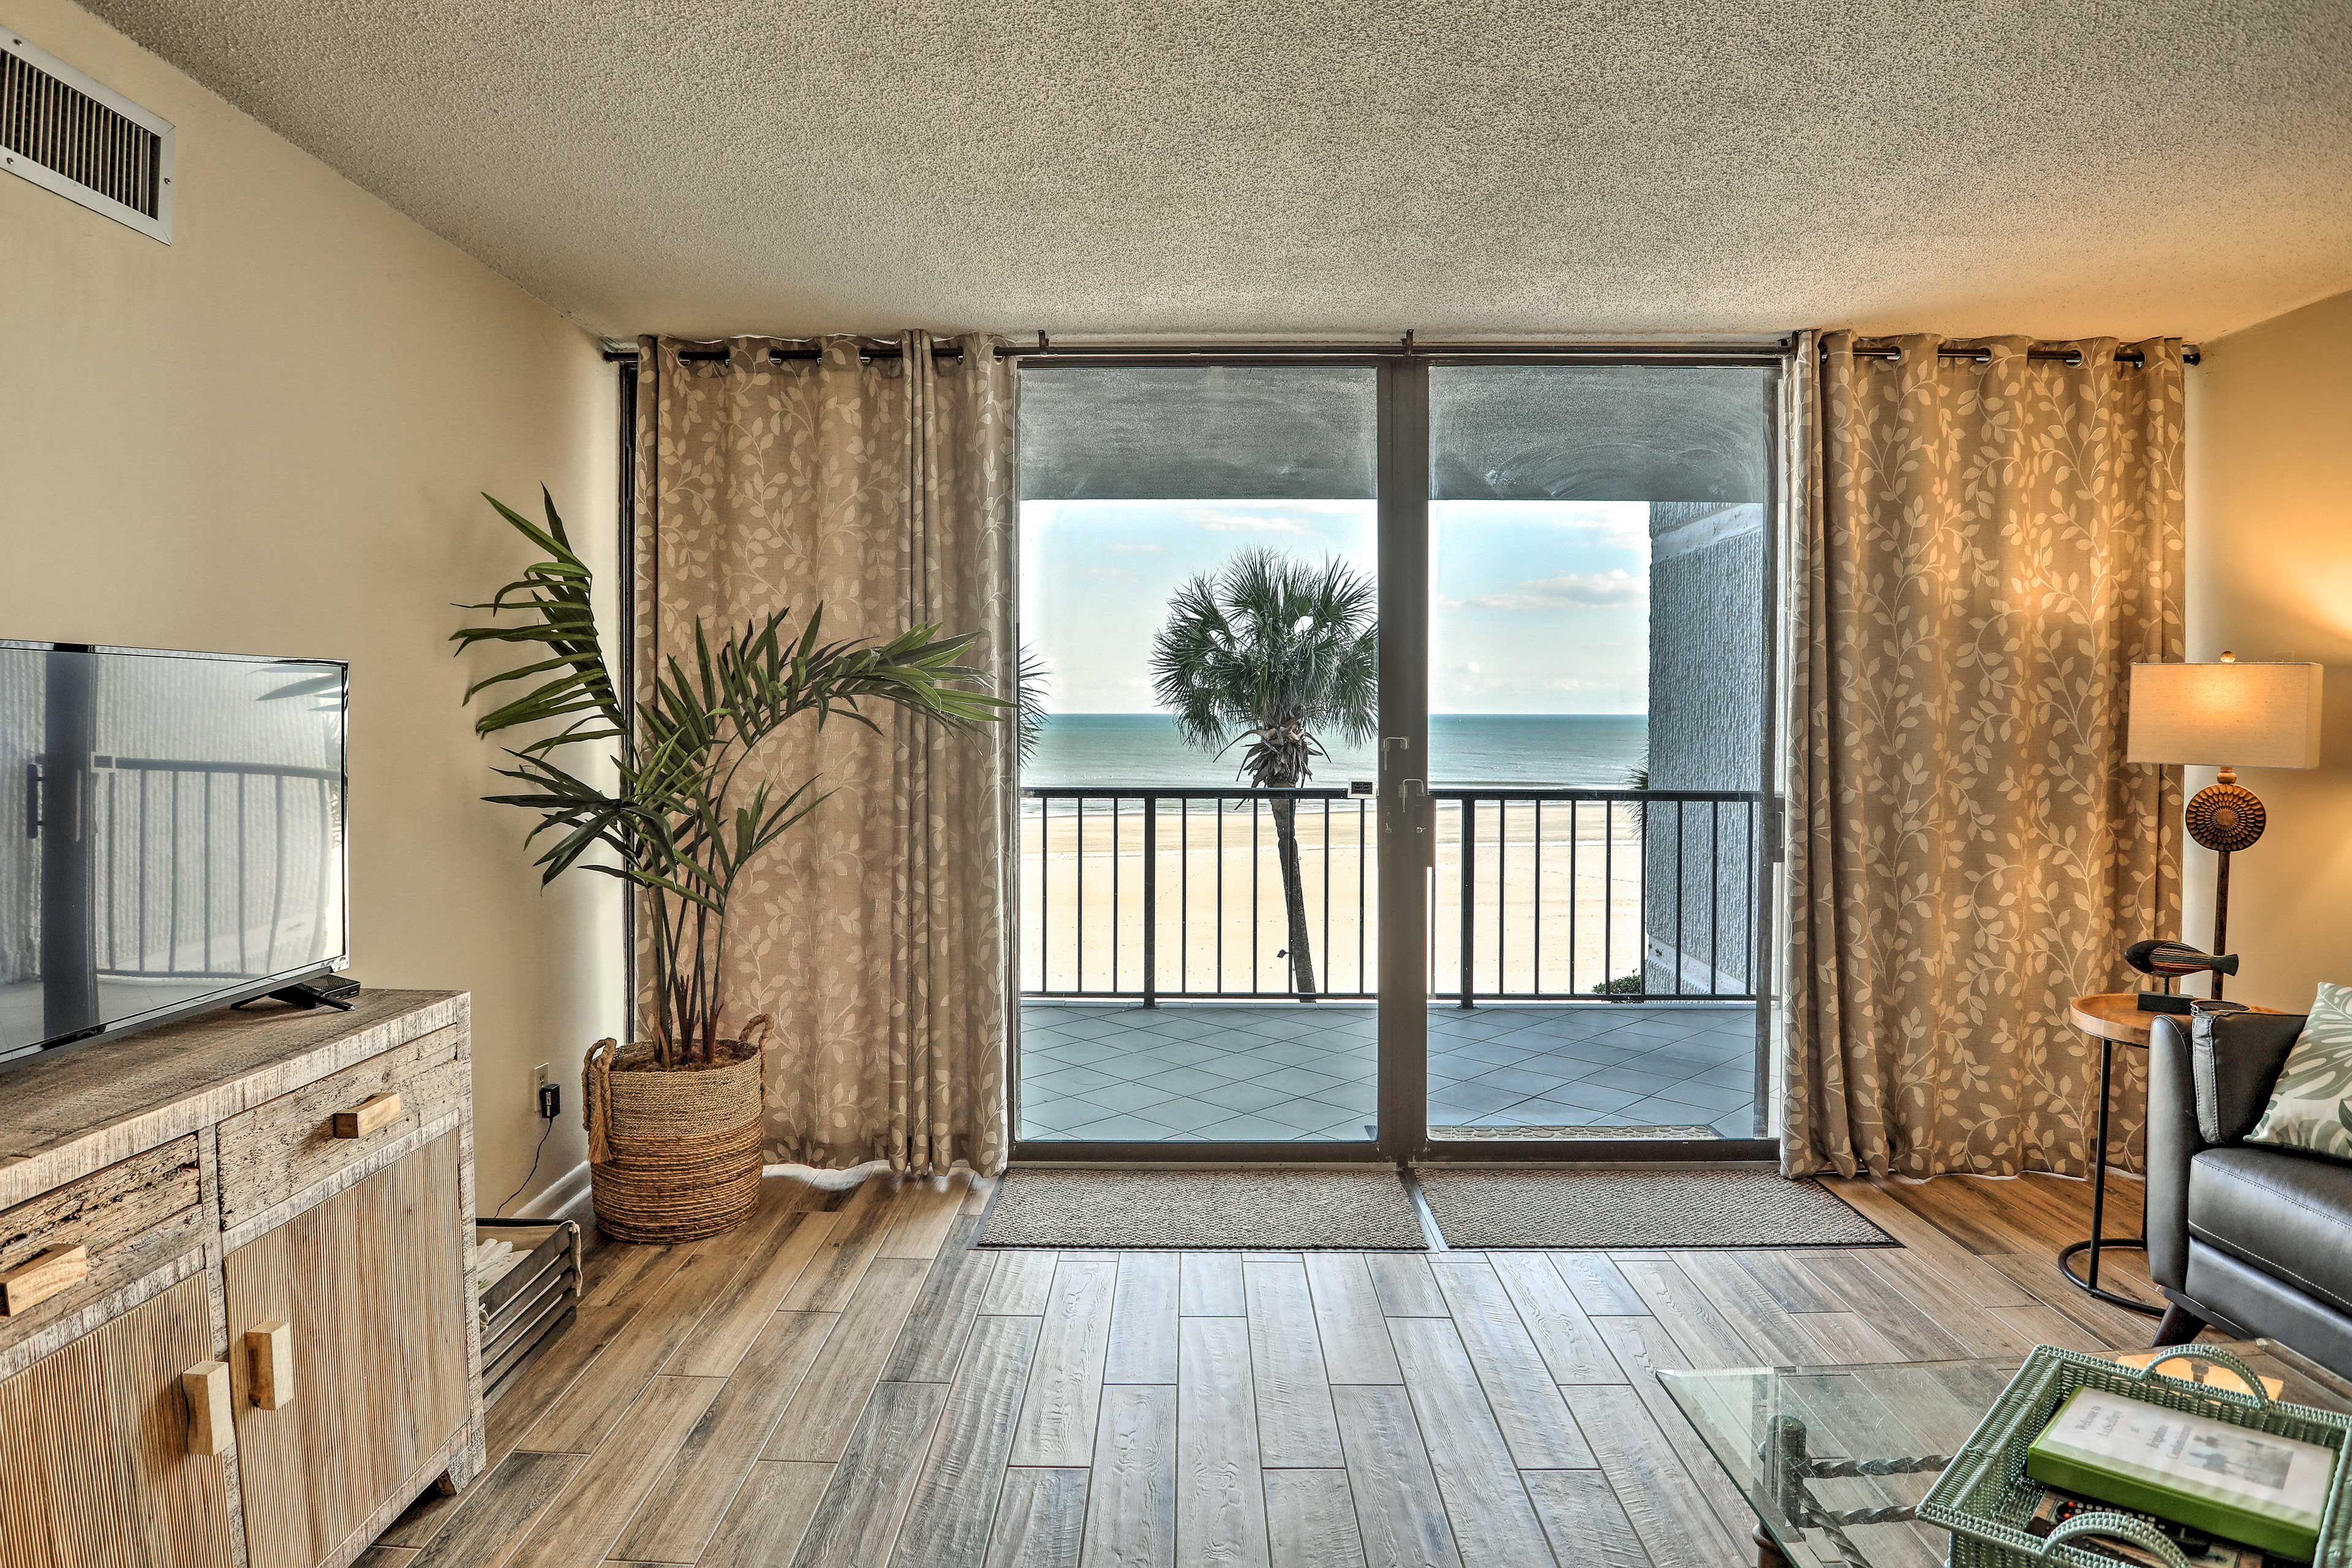 Open the sliding glass doors for a tropical breeze and ocean views!